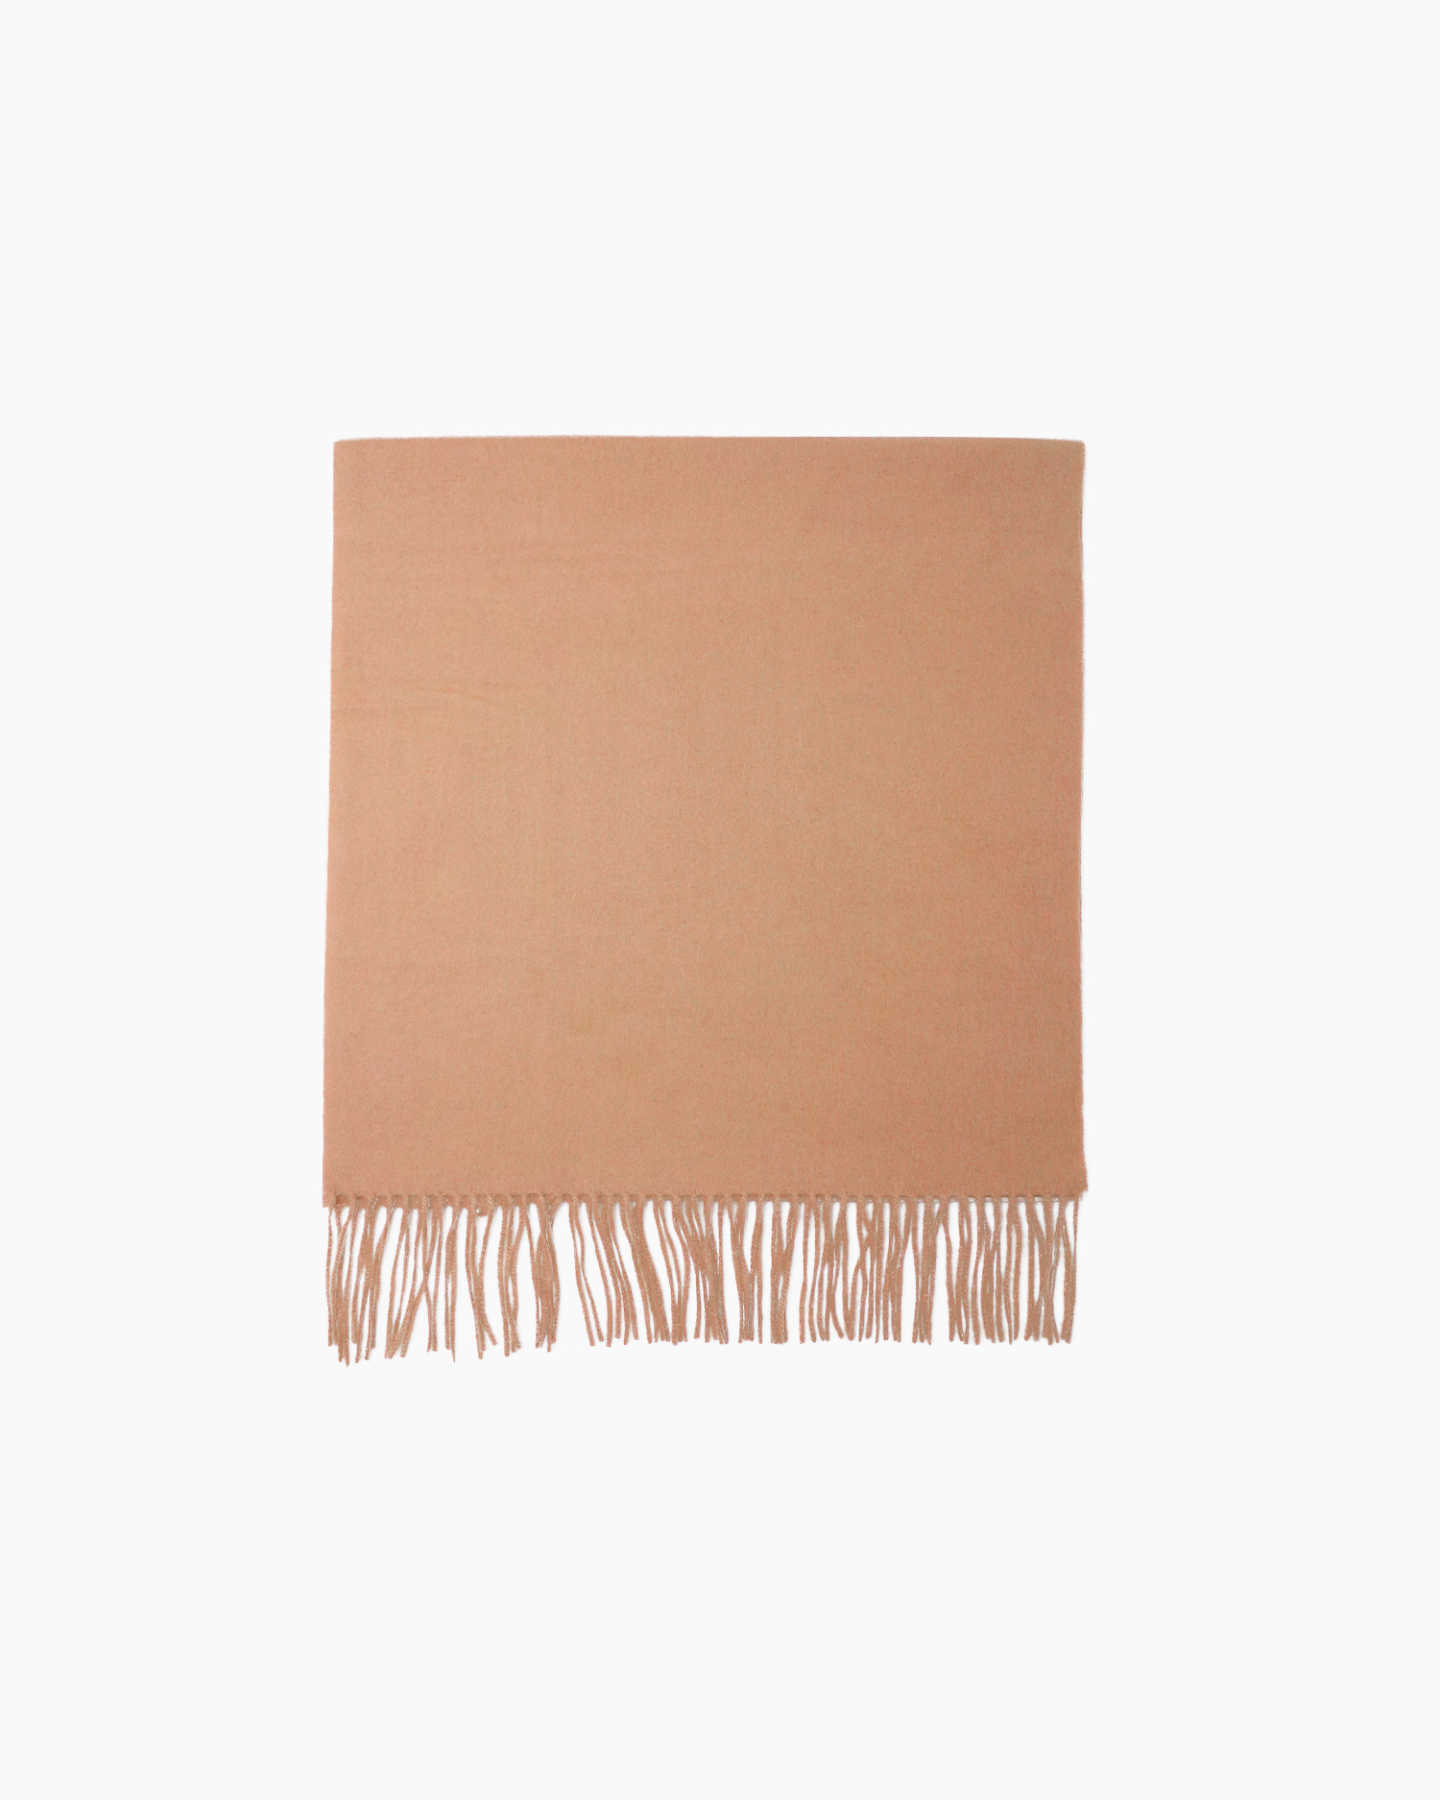 Cashmere throw blanket in camel